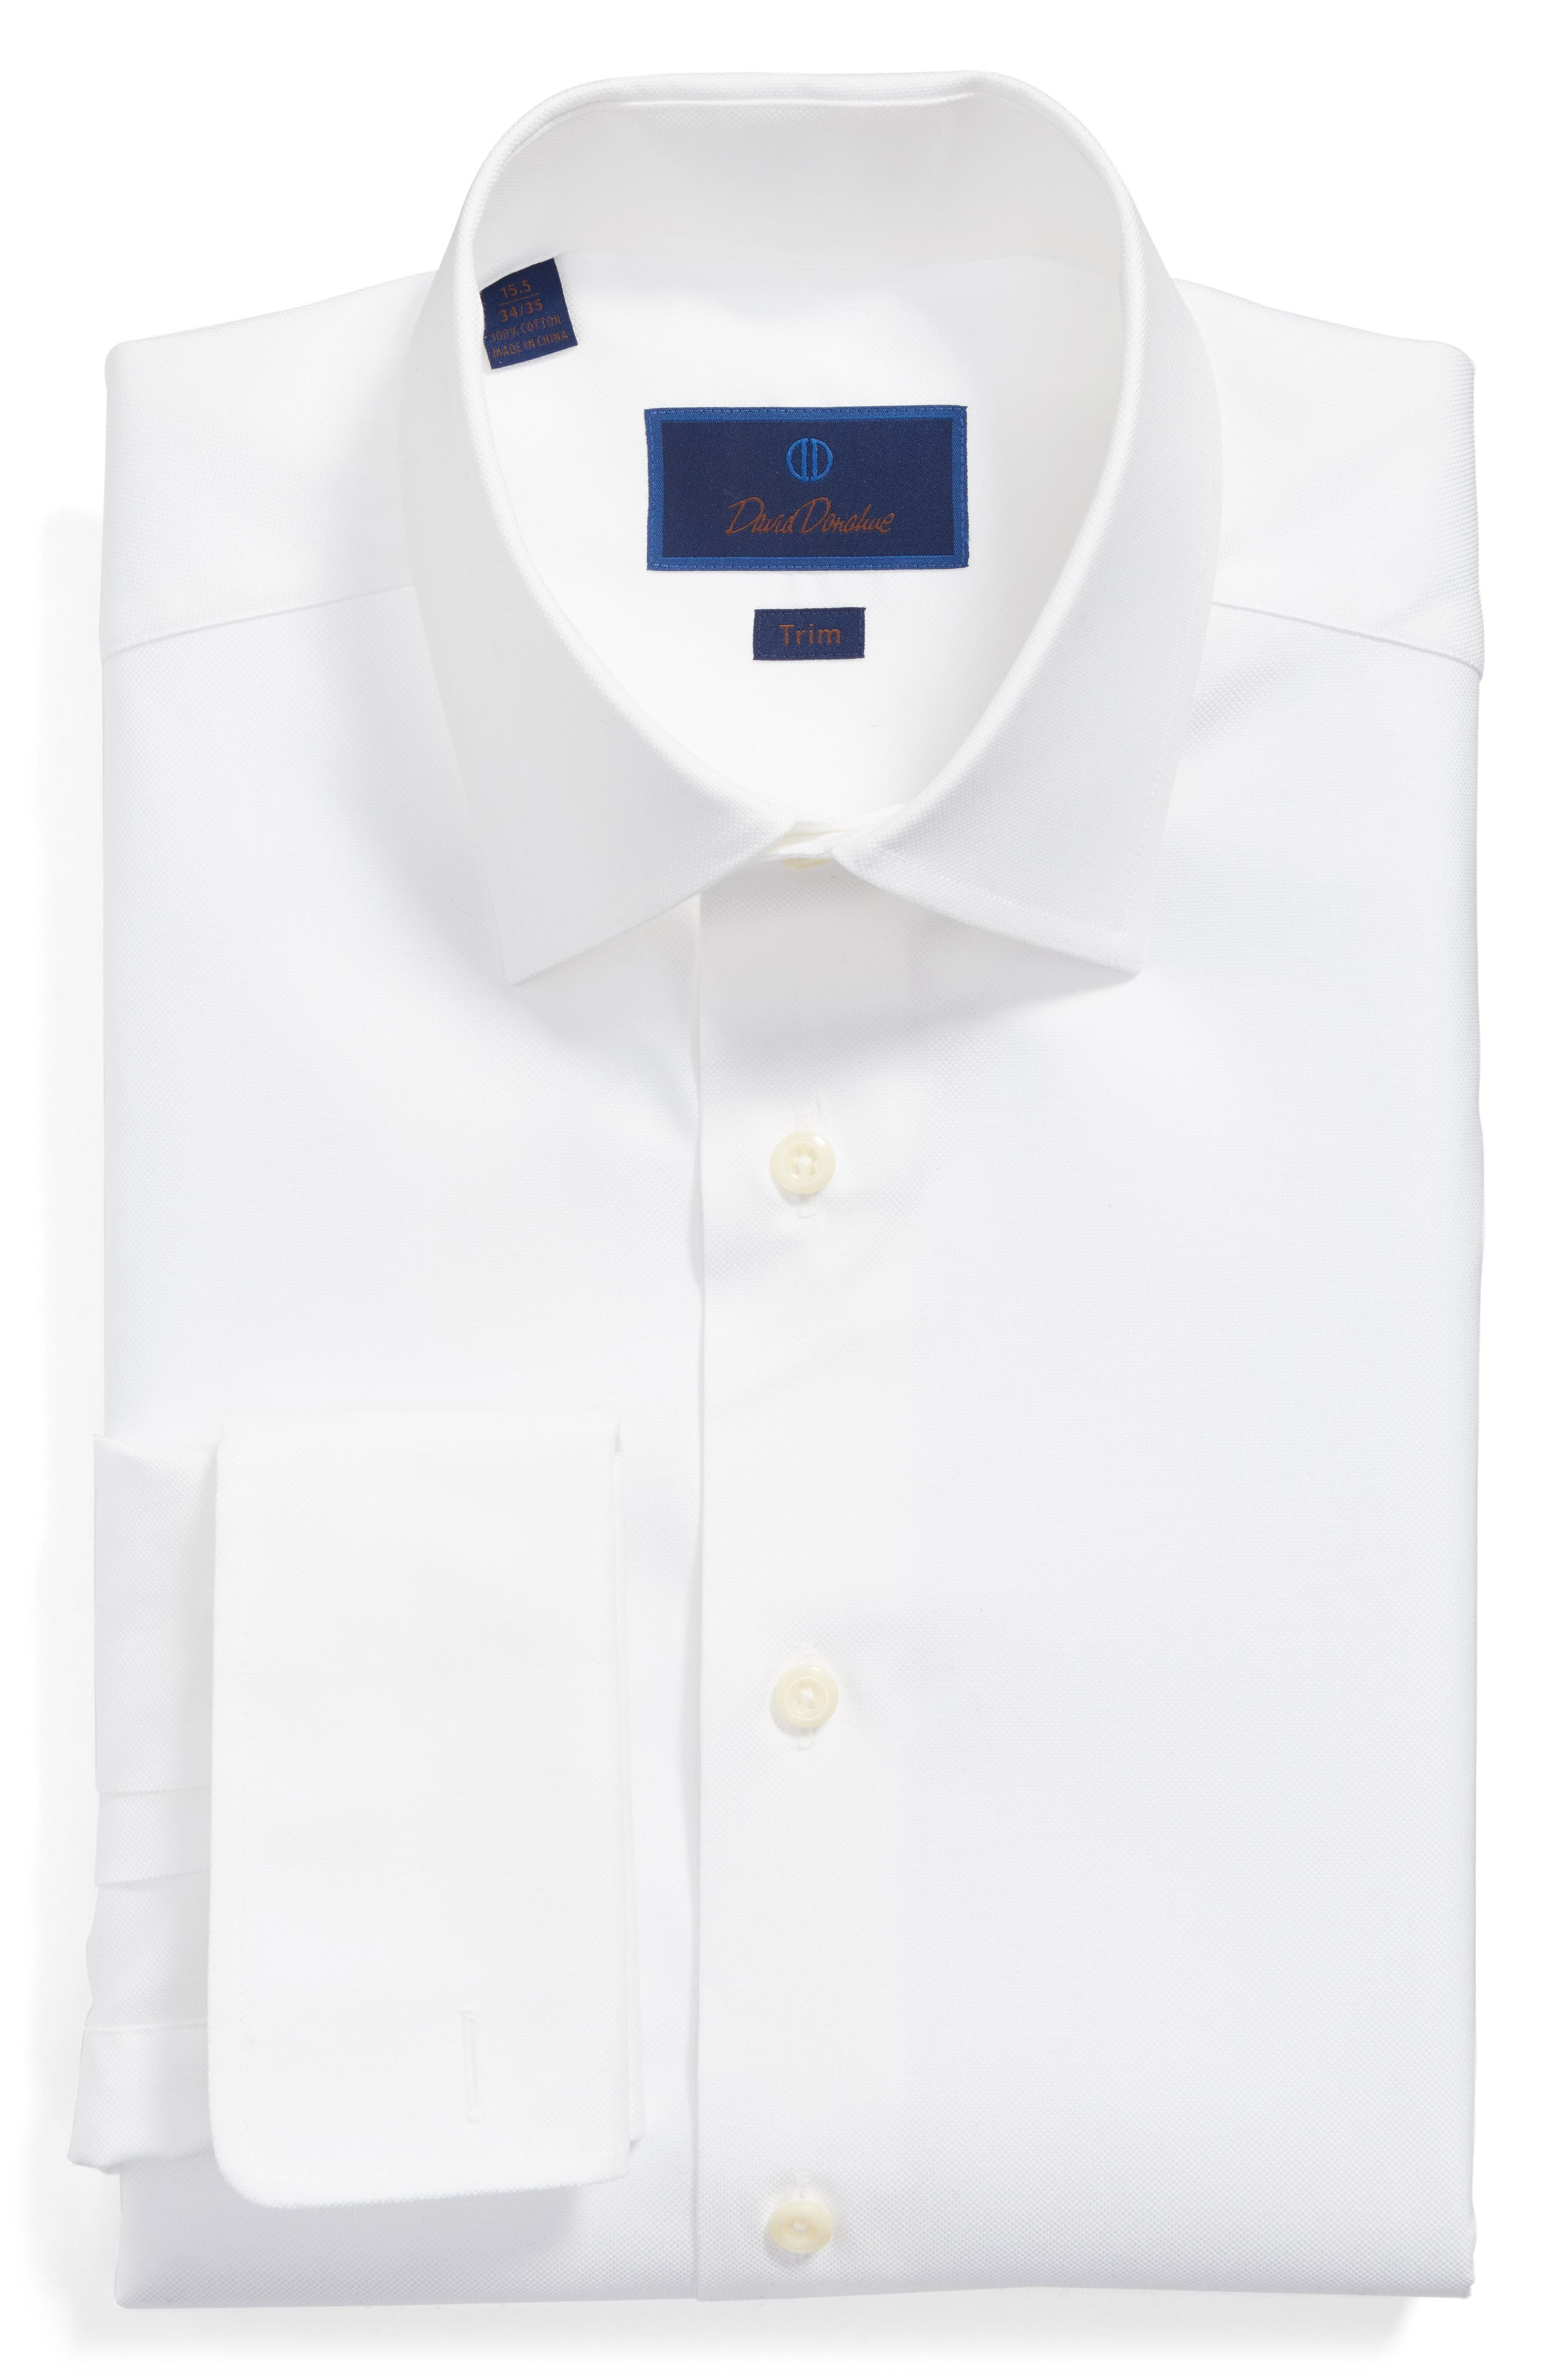 DAVID DONAHUE, Trim Fit Solid French Cuff Dress Shirt, Main thumbnail 1, color, WHITE